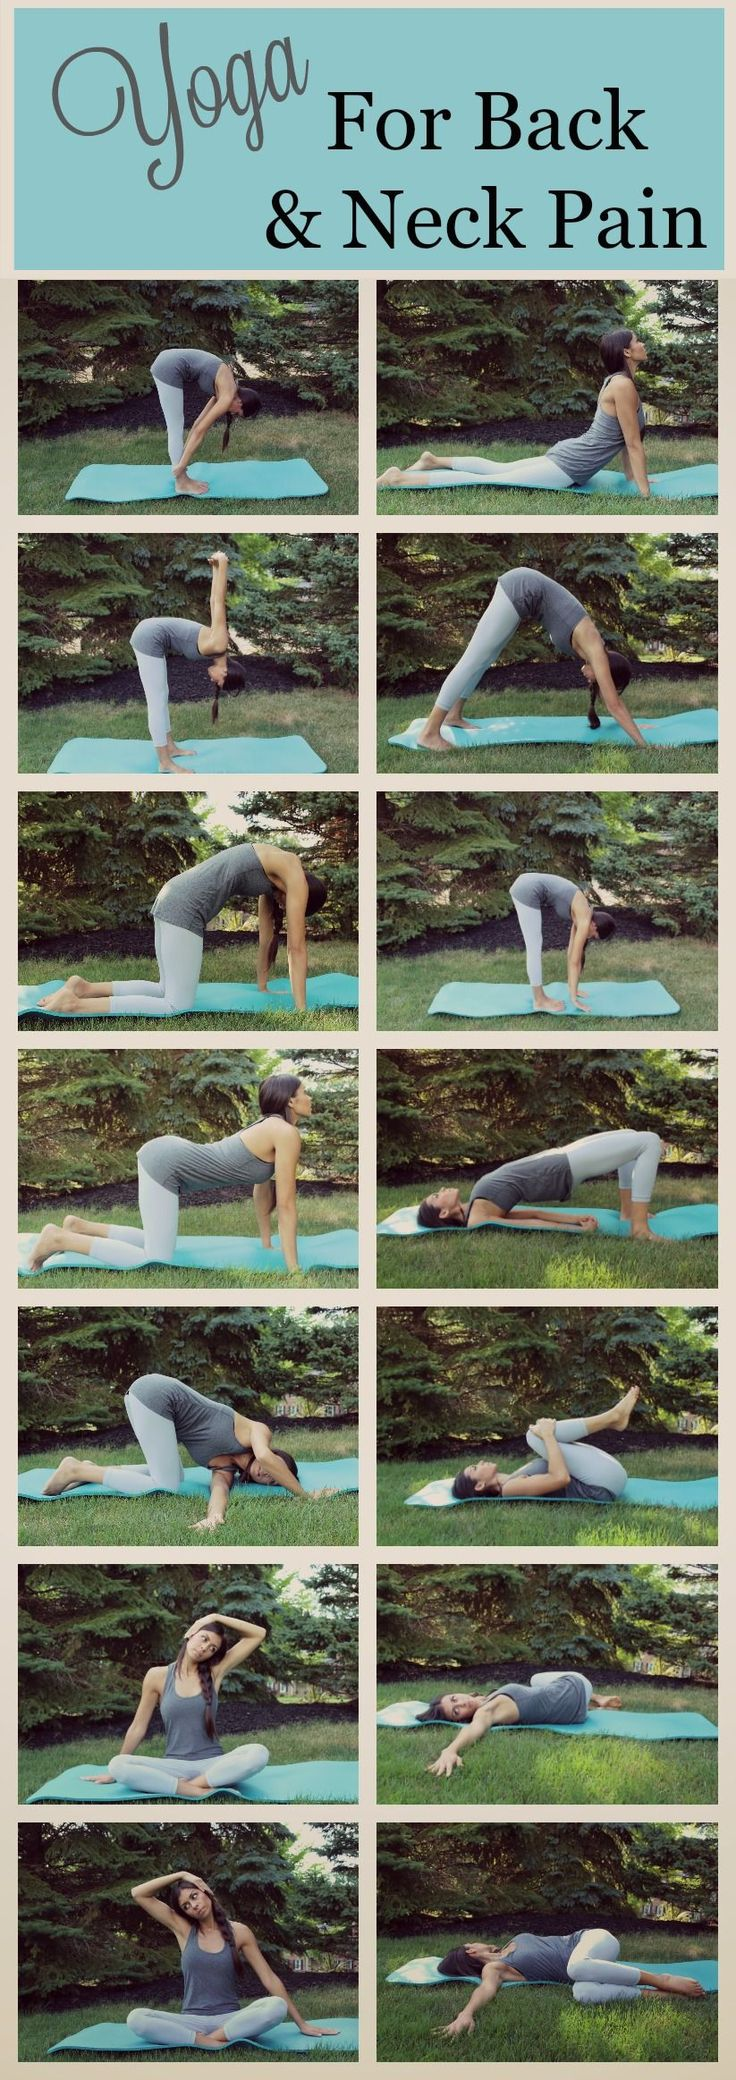 Repin to save these poses for later!  Give these Yoga poses a try if you are experiencing back or neck pain.  These are some of my favorite poses when I am feeling sore or achy in my neck and back. http://whymattress.com/how-to-choose-the-best-mattress-for-back-pain/